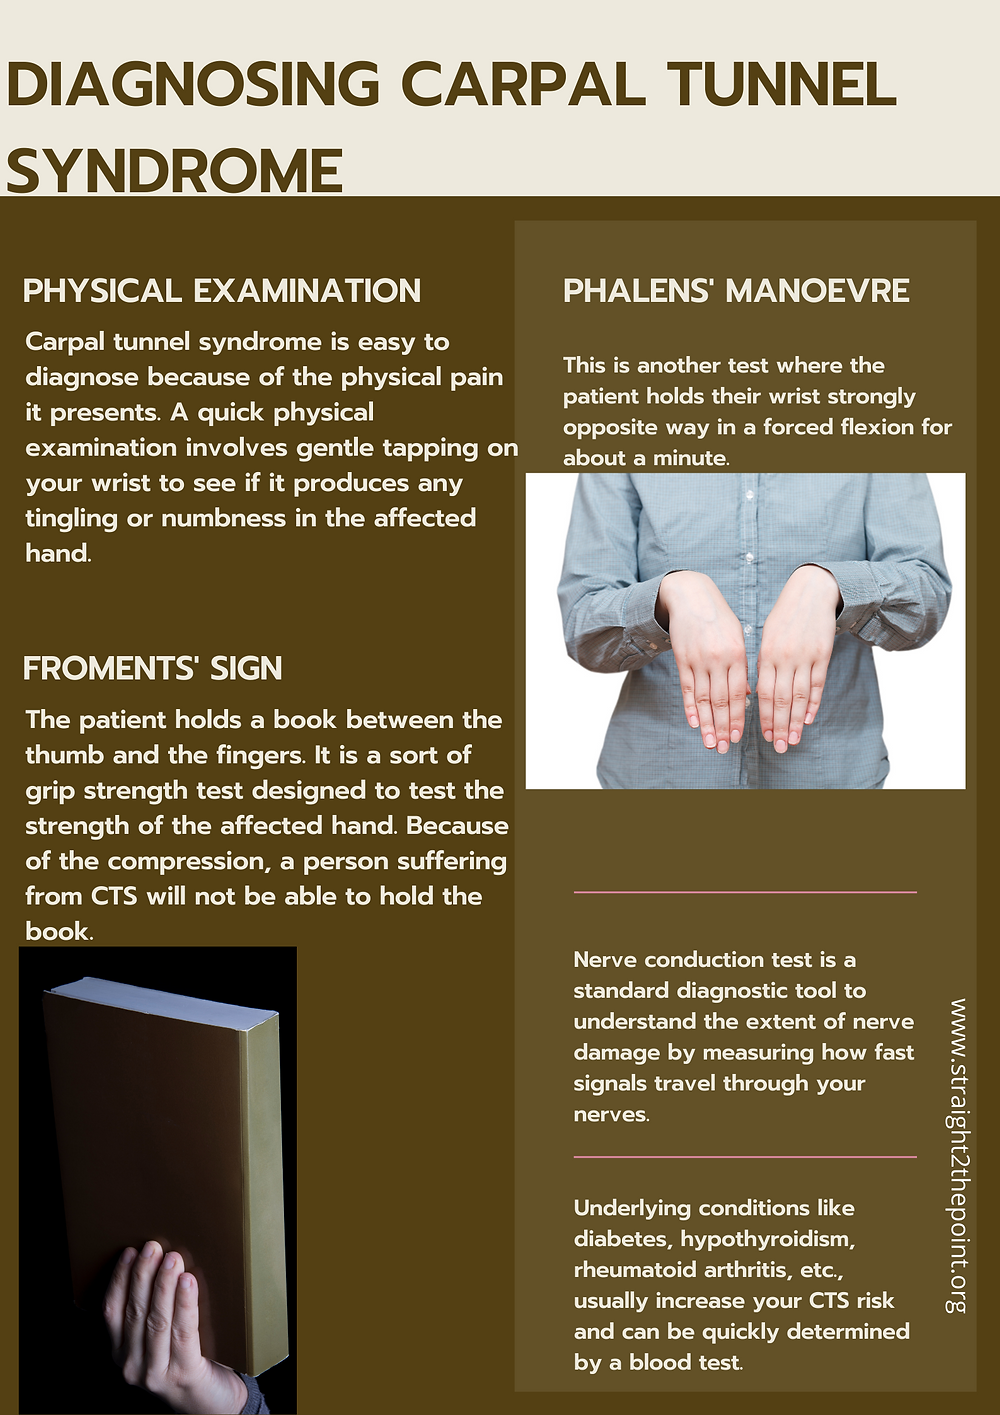 diagnosing-carpal-tunnel-syndrome